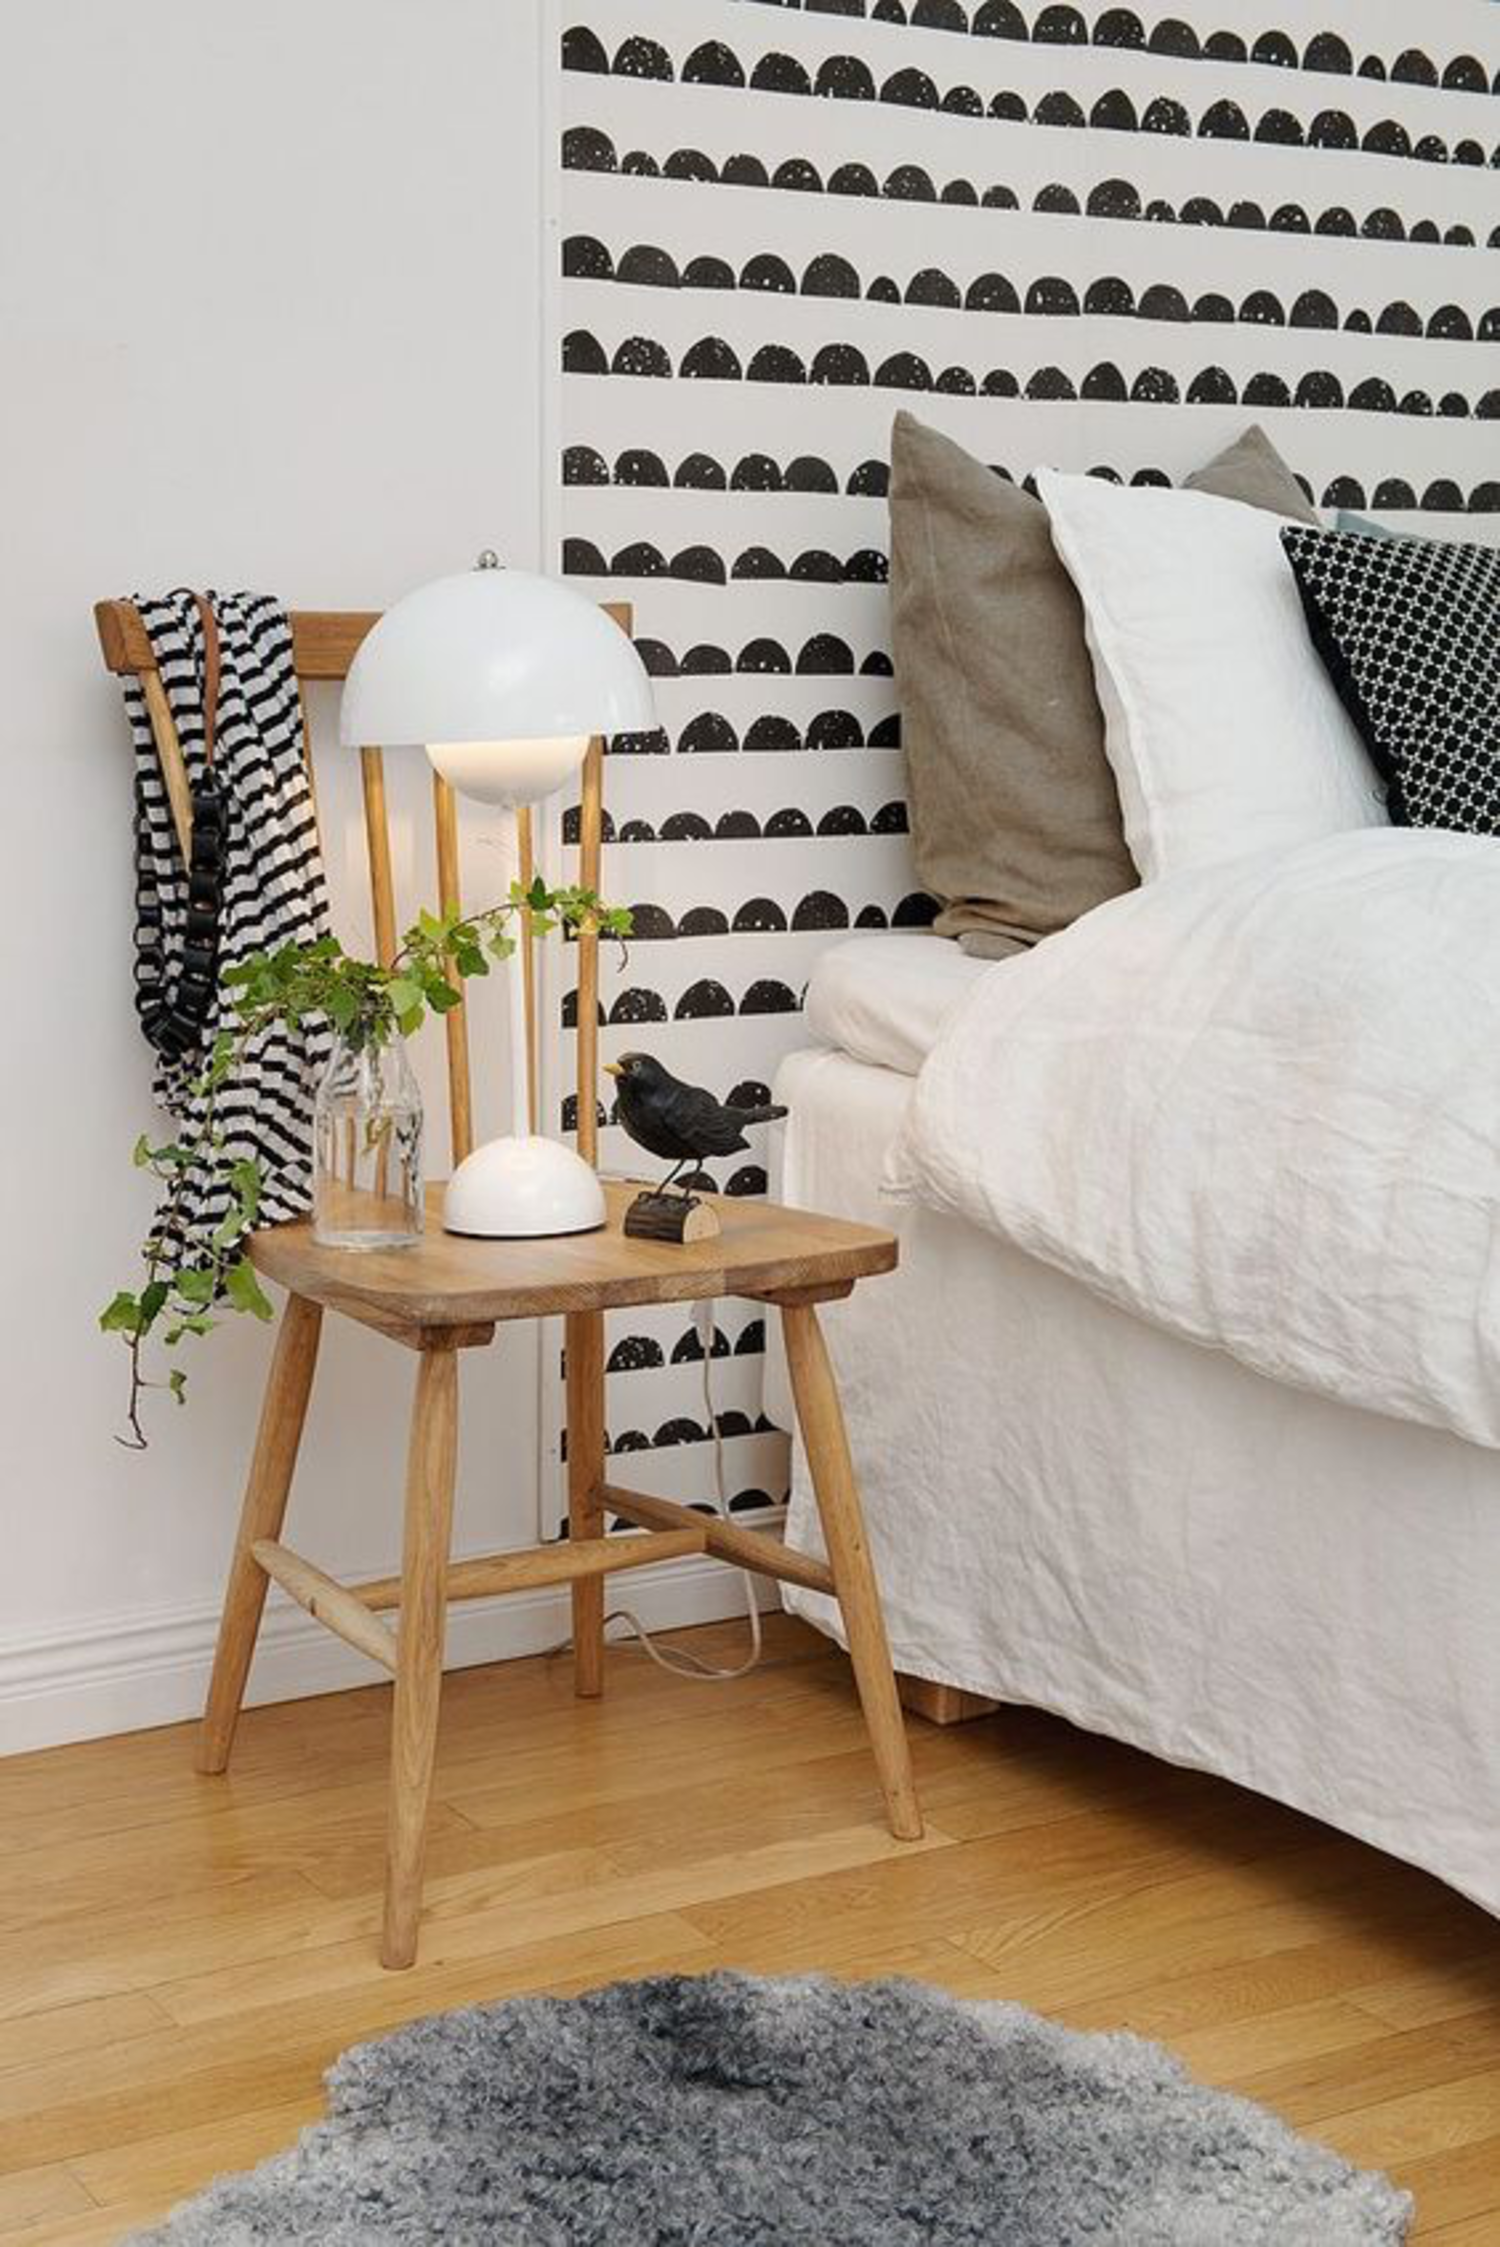 Step Up Your Bedroom Style Doable Diy Headboard Ideas -